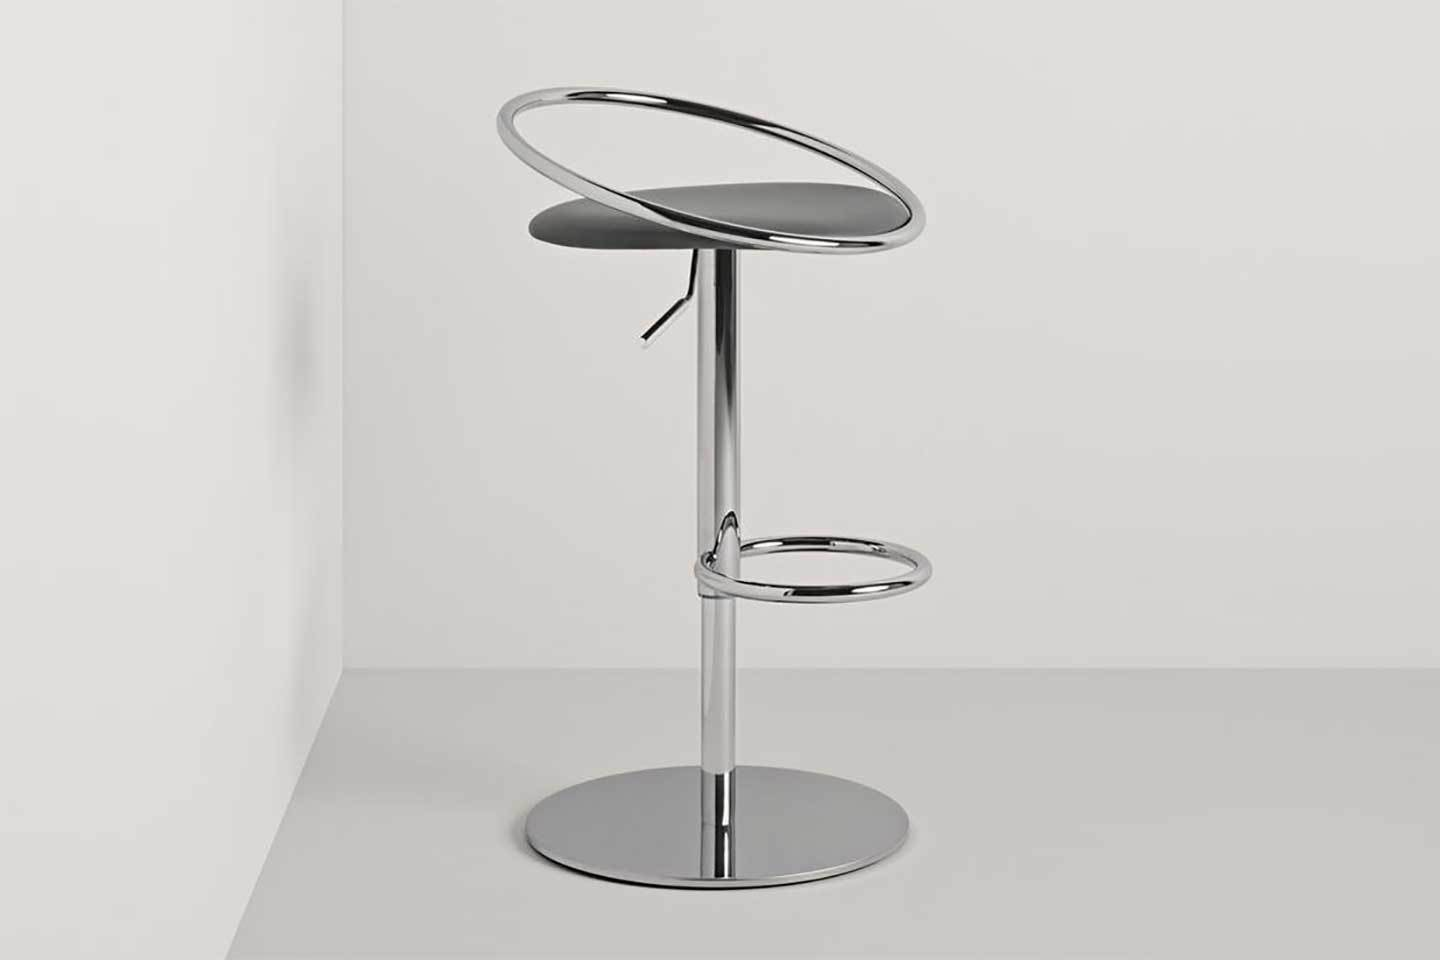 Mobili Italia_Frag FIZZY counter stool